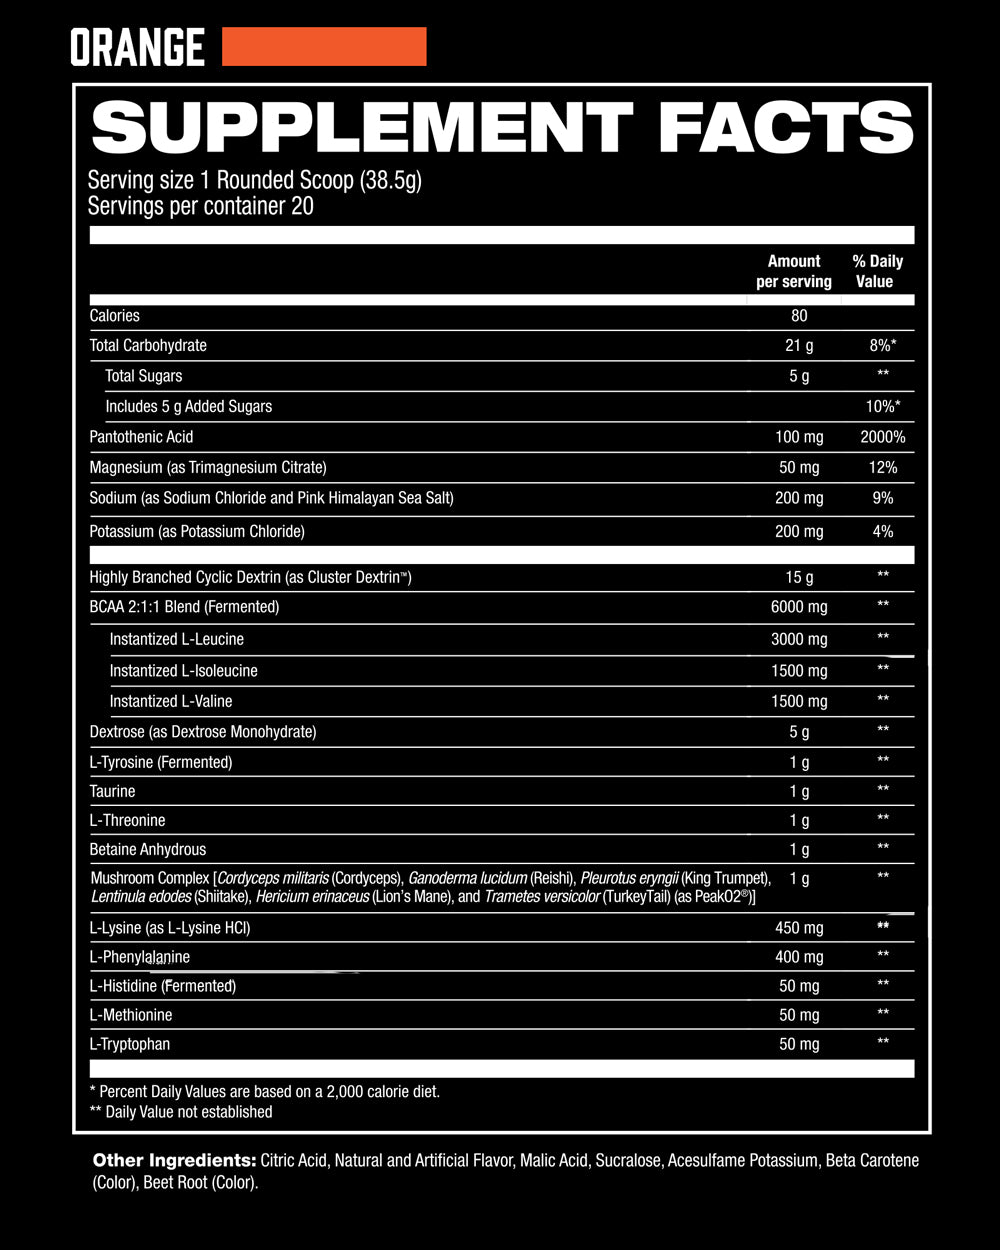 IntraR3 Orange Supplement Facts